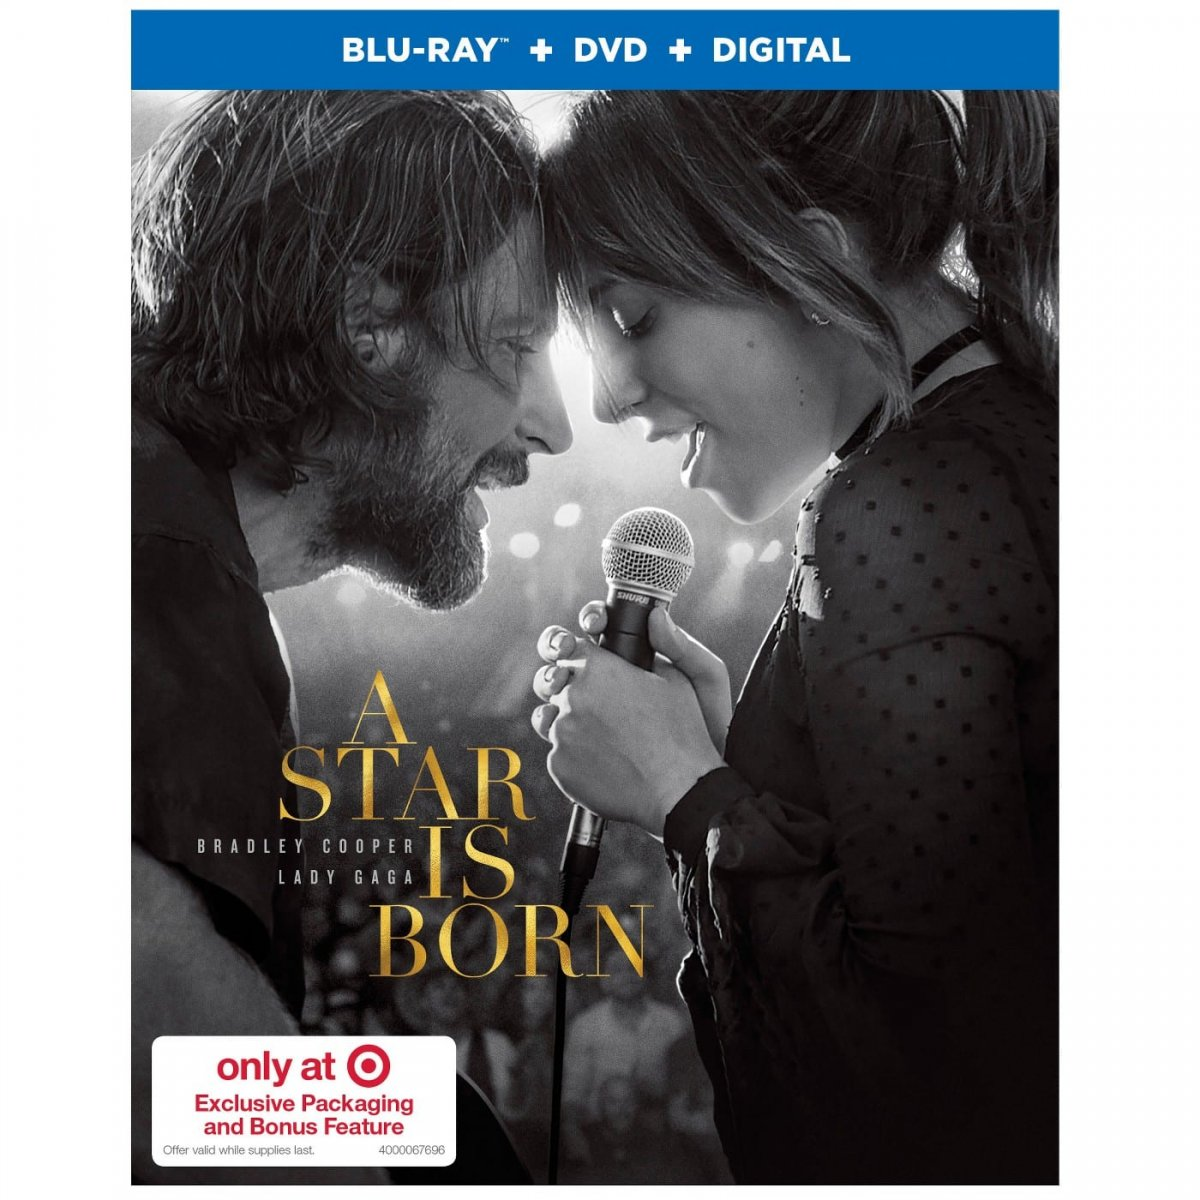 A Star is Born' Blu-ray Release Date and Details - Fan Fest